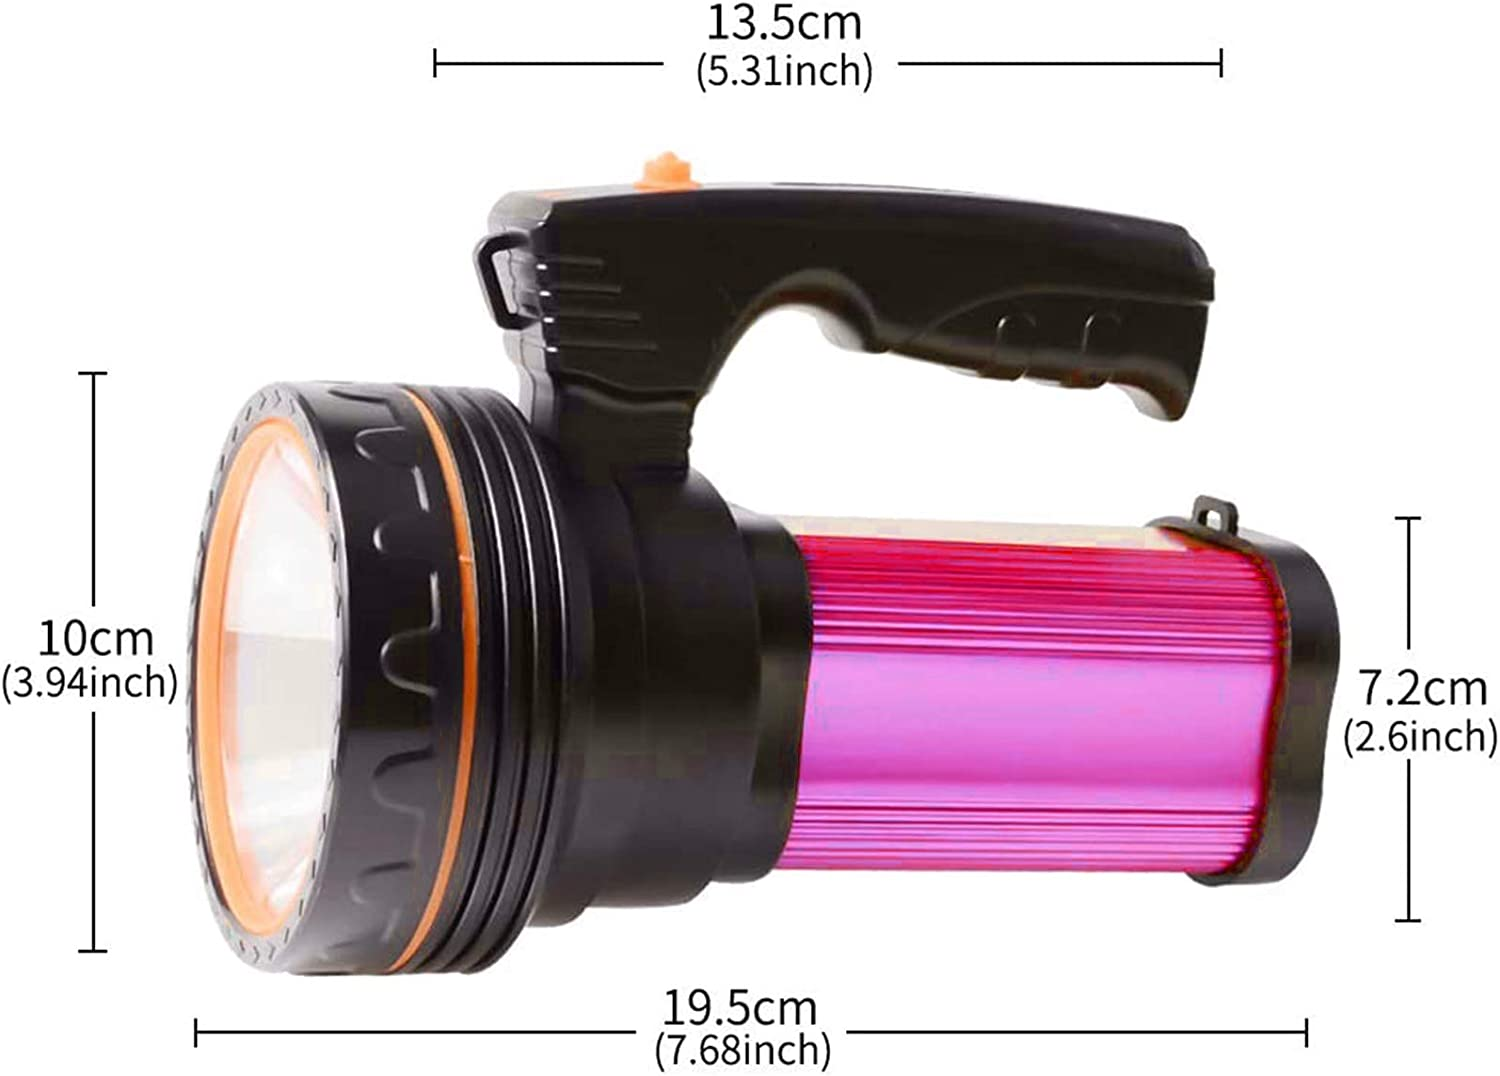 LED handheld tactical flashlight is super bright rechargeable ...